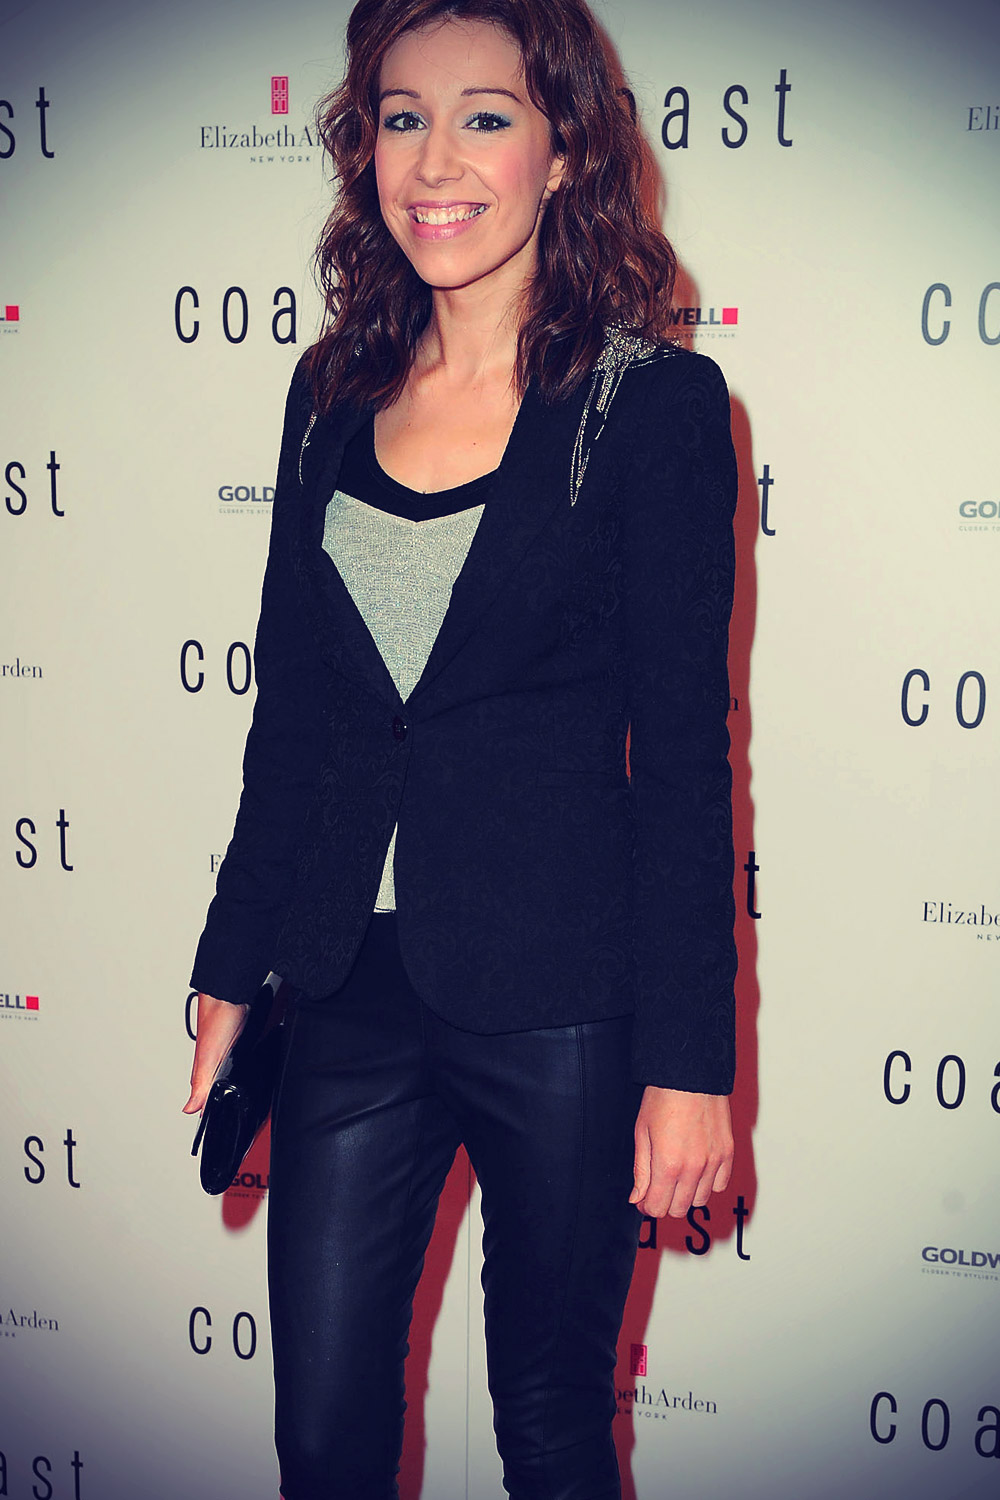 Samantha Siddal Grand opening of Coast's flagship store at The Trafford Centre - Arrivals Manchester